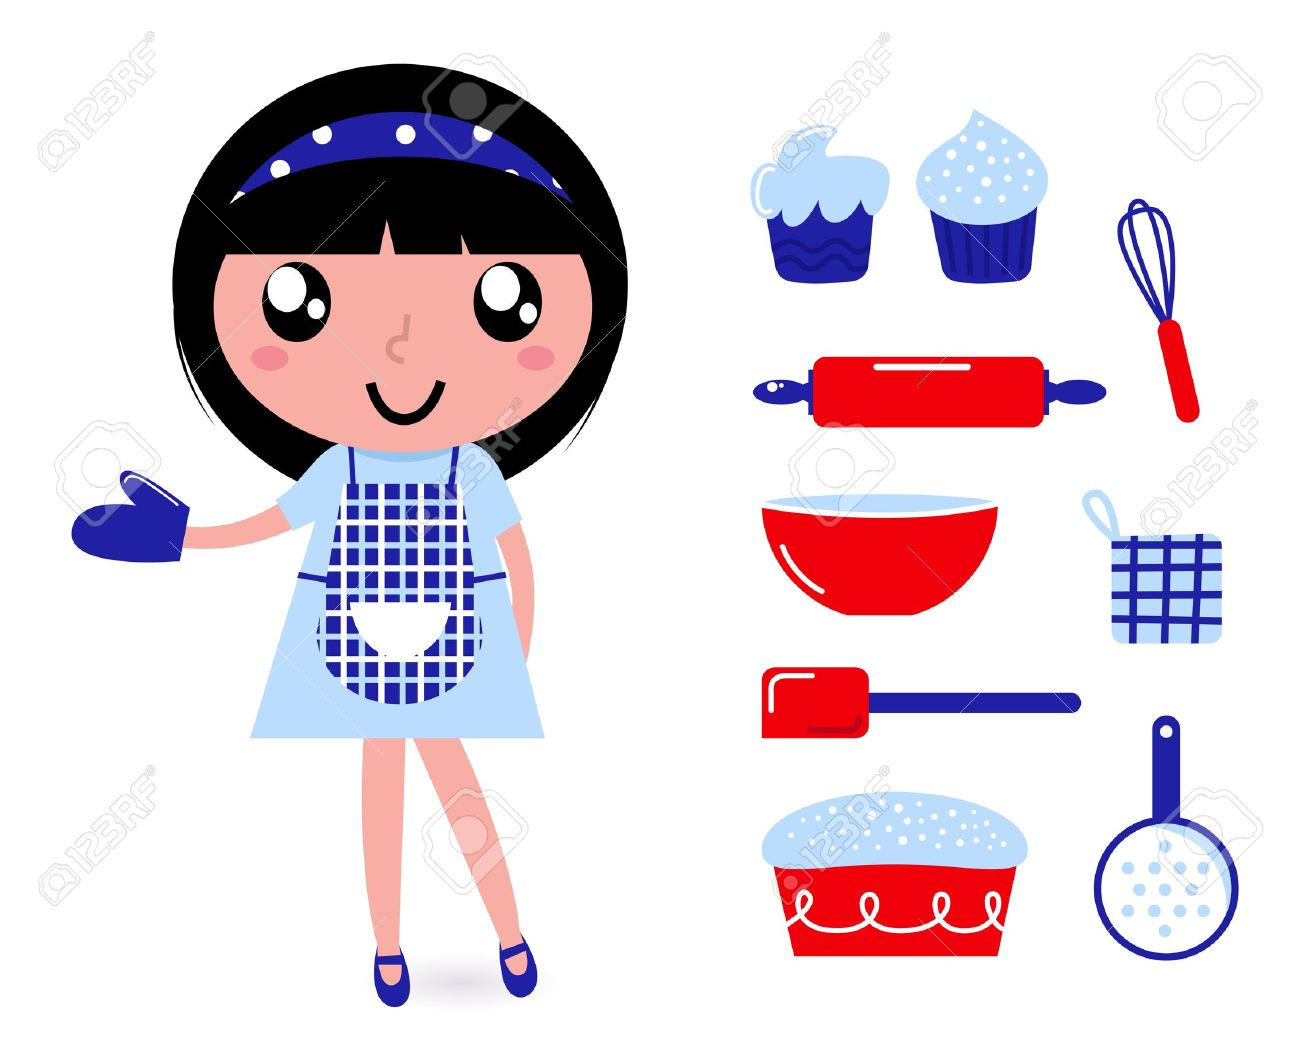 Woman cooking vector images amp pictures becuo - Apron Cute Retro Cooking Woman With Items Vector Cartoon Illustration